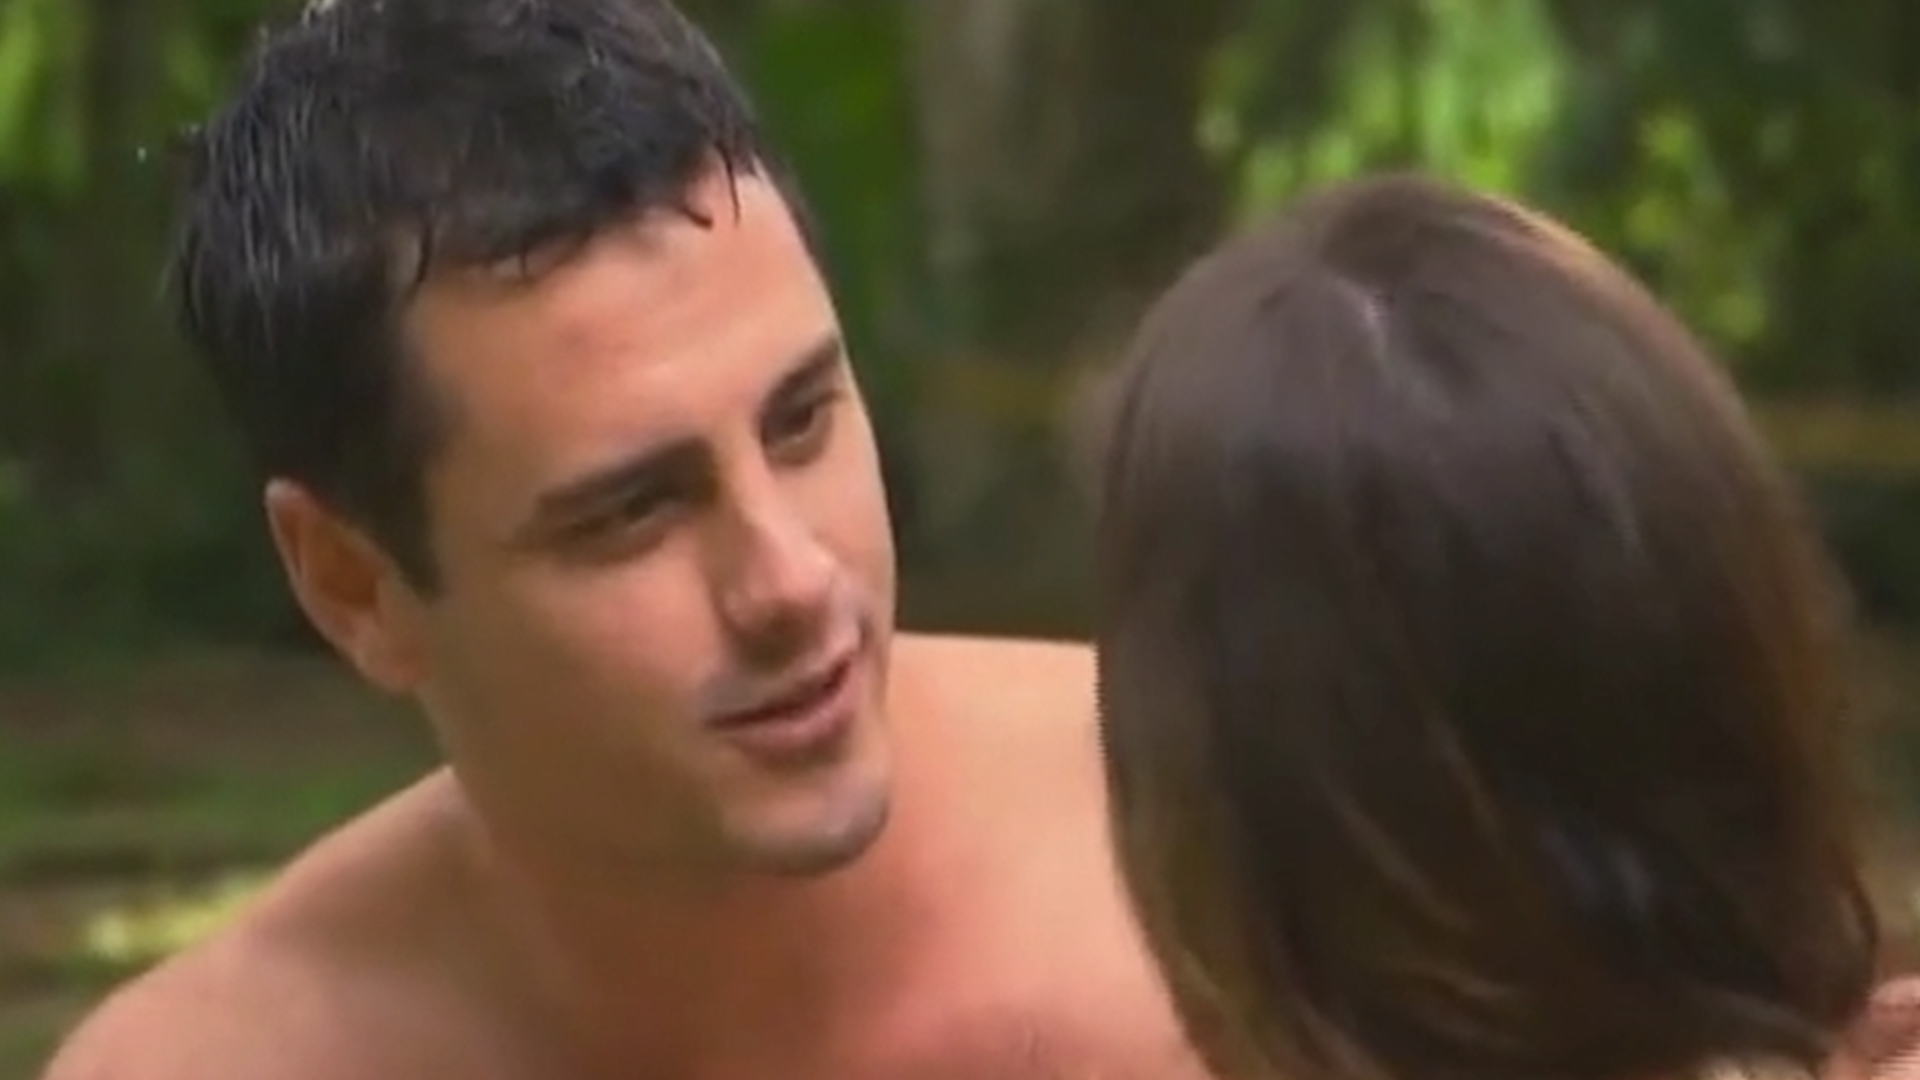 The Bachelor's Caila Quinn Speaks Out on Being Dumped by Ben Higgins: 'The First Thing That Hit Me Was Anger'